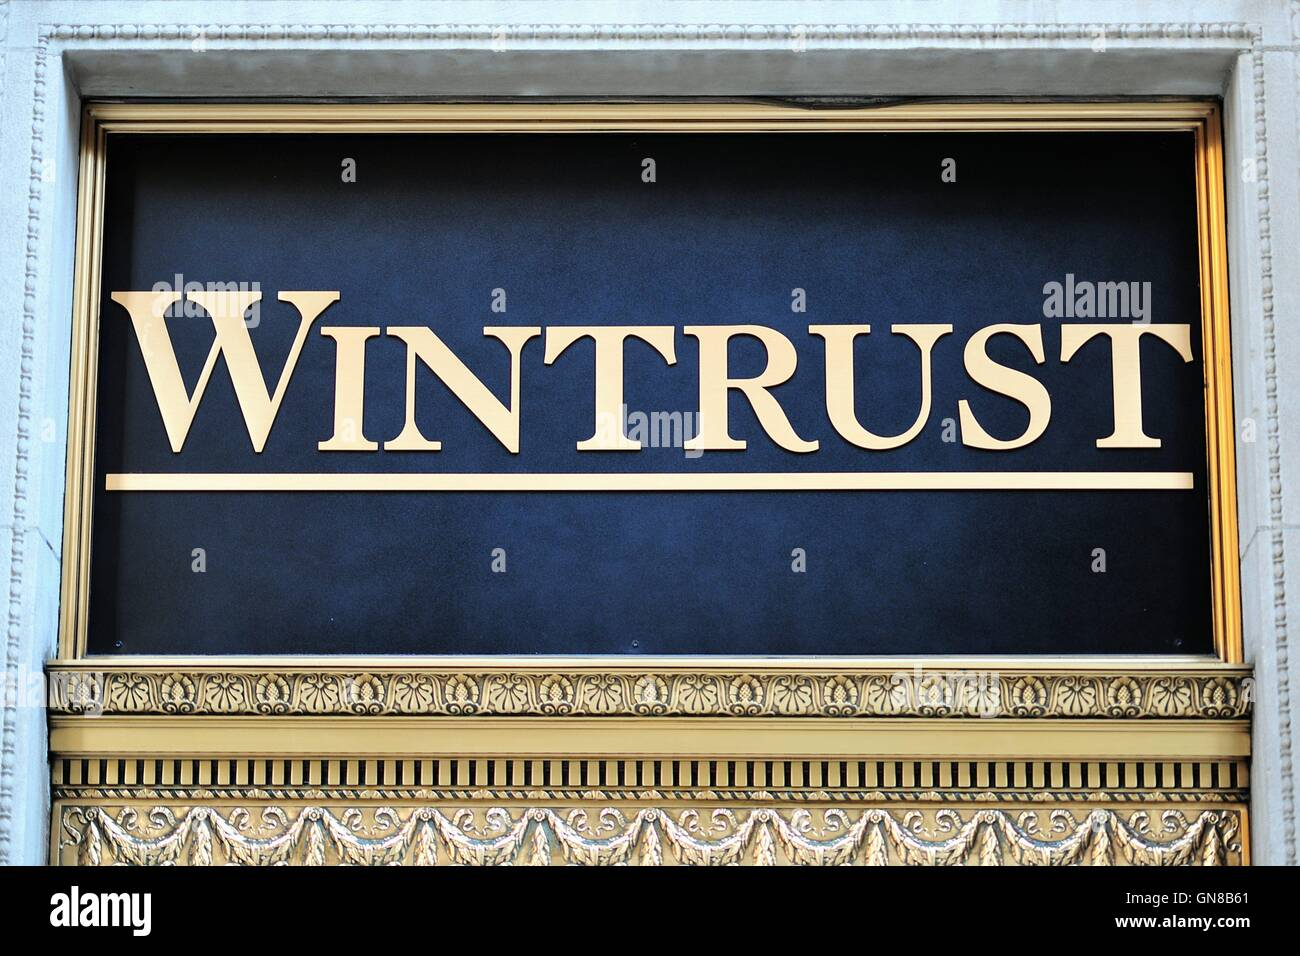 A Wintrust Bank sign on a building in Chicago's financial district is symbolic of the city's major role - Stock Image